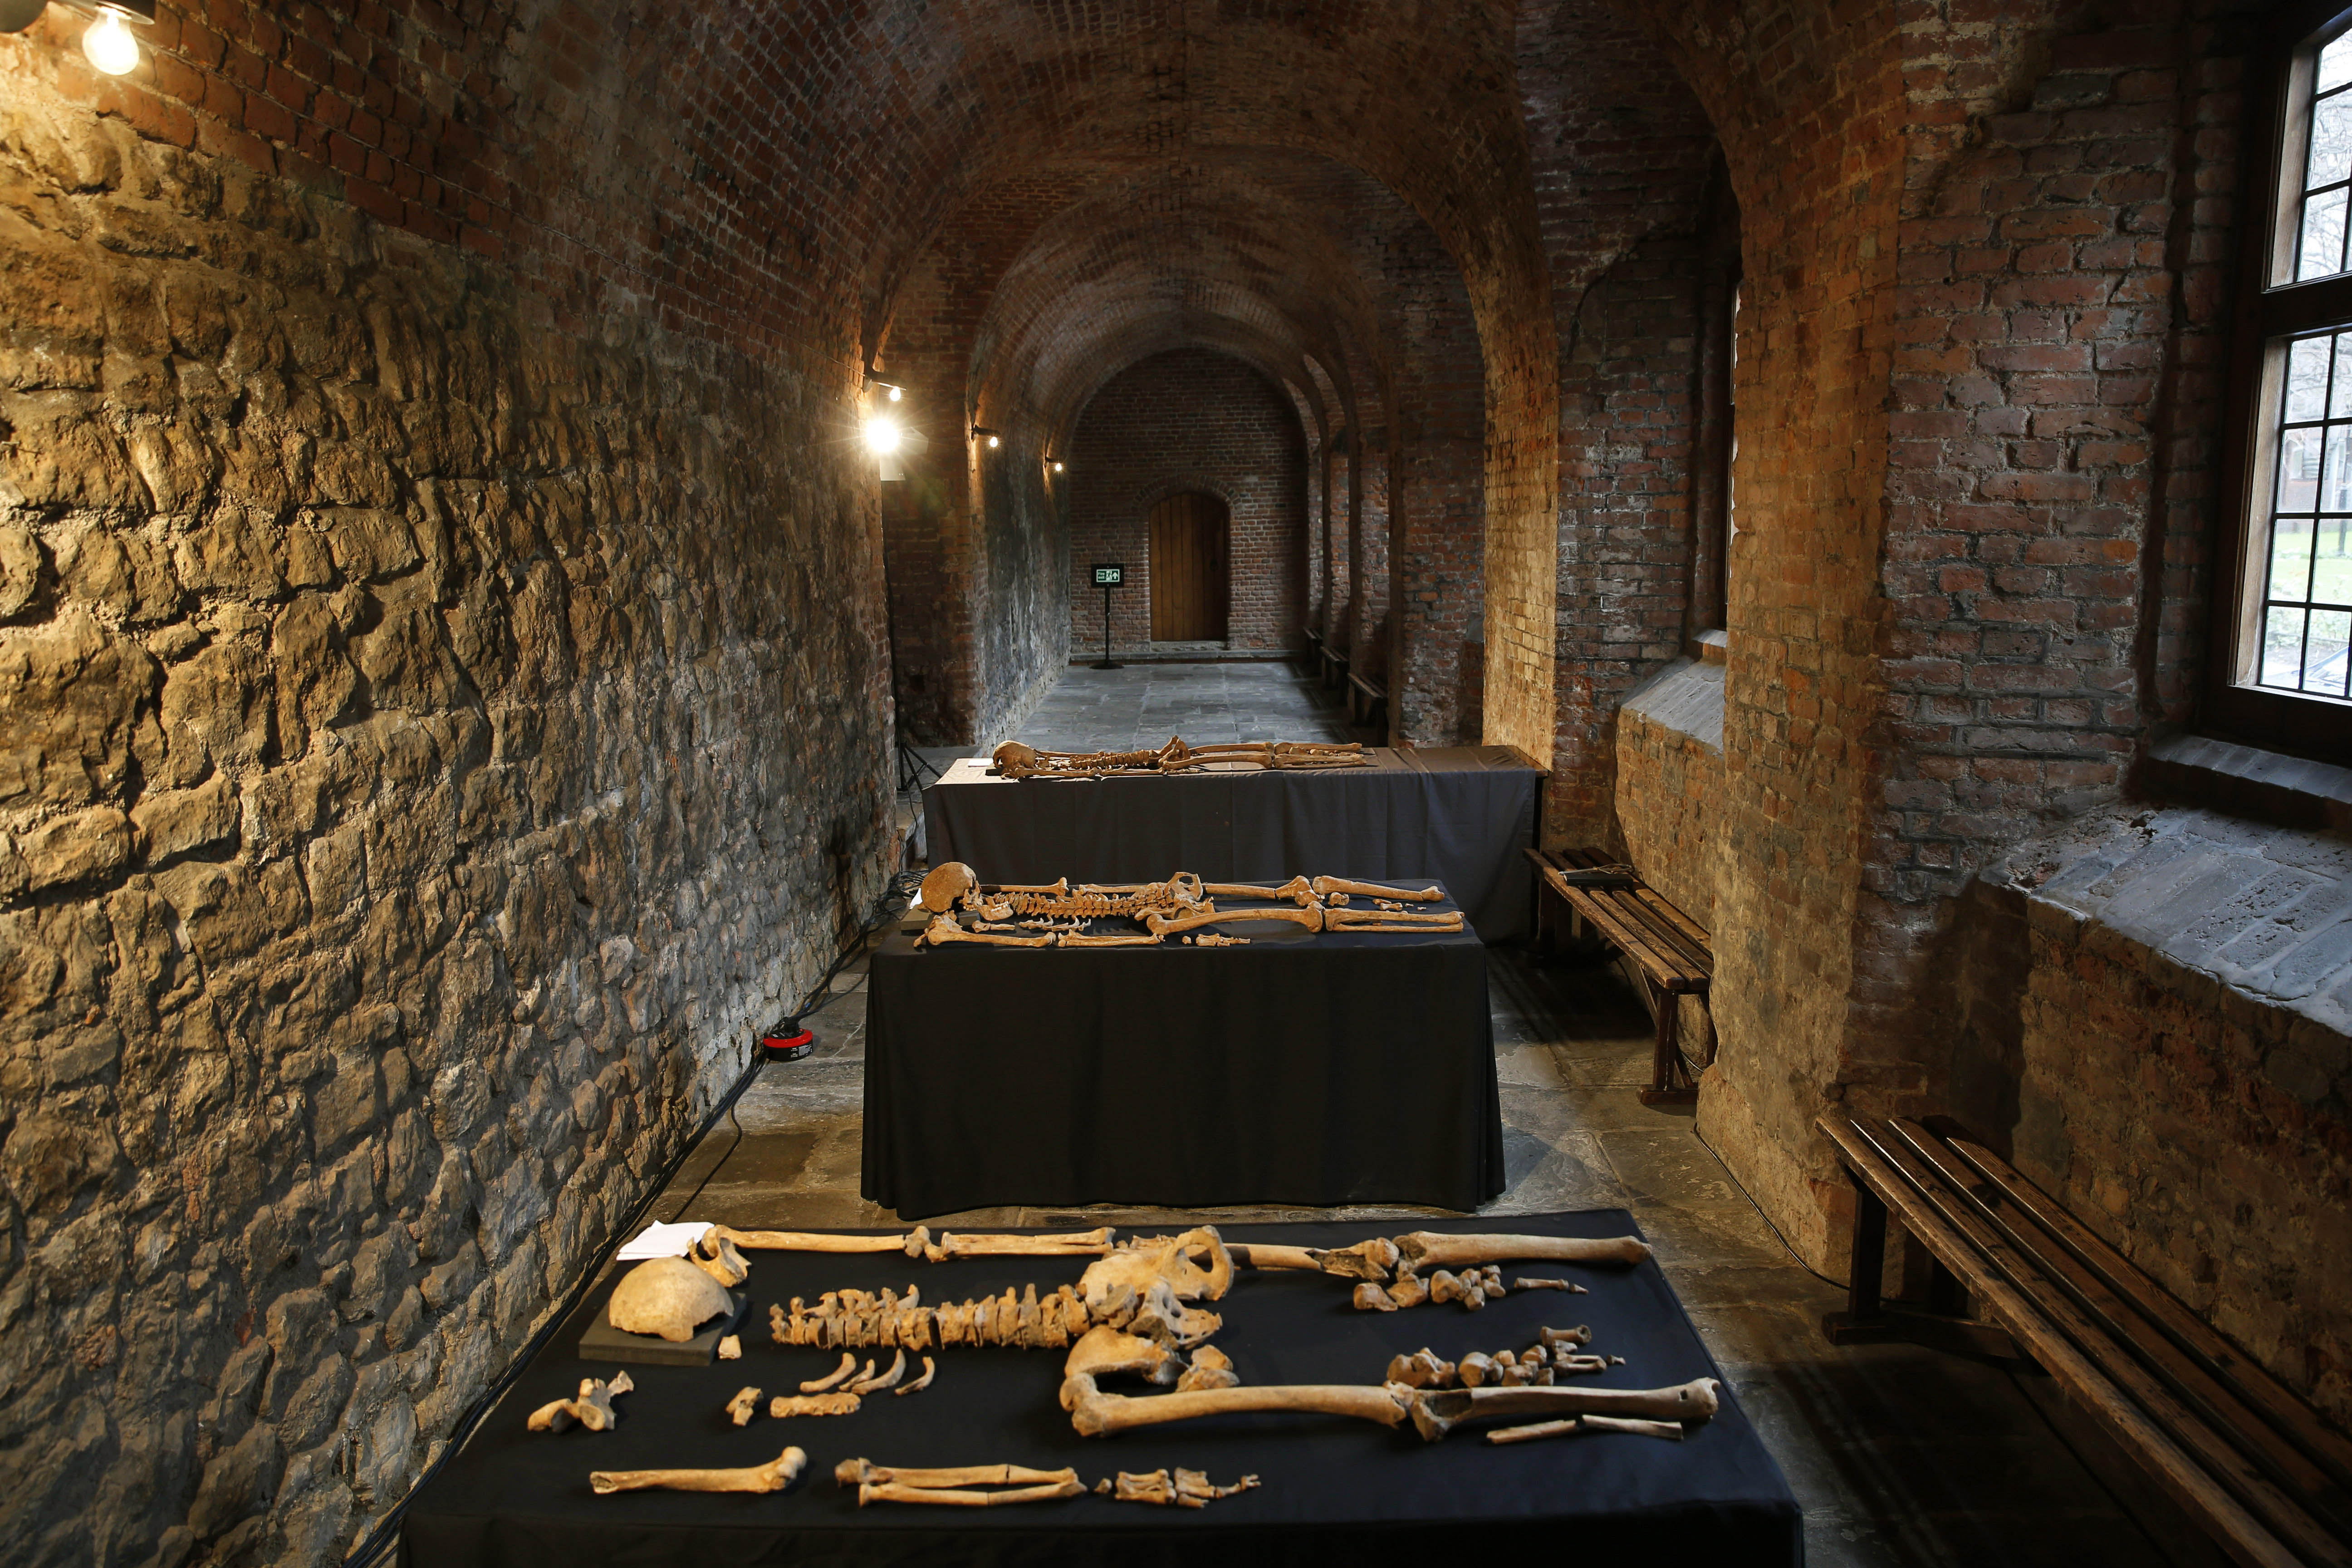 In this Wednesday, March 26, 2014 photo, some of the skeletons found by construction workers under central London's Charterhouse Square are pictured.